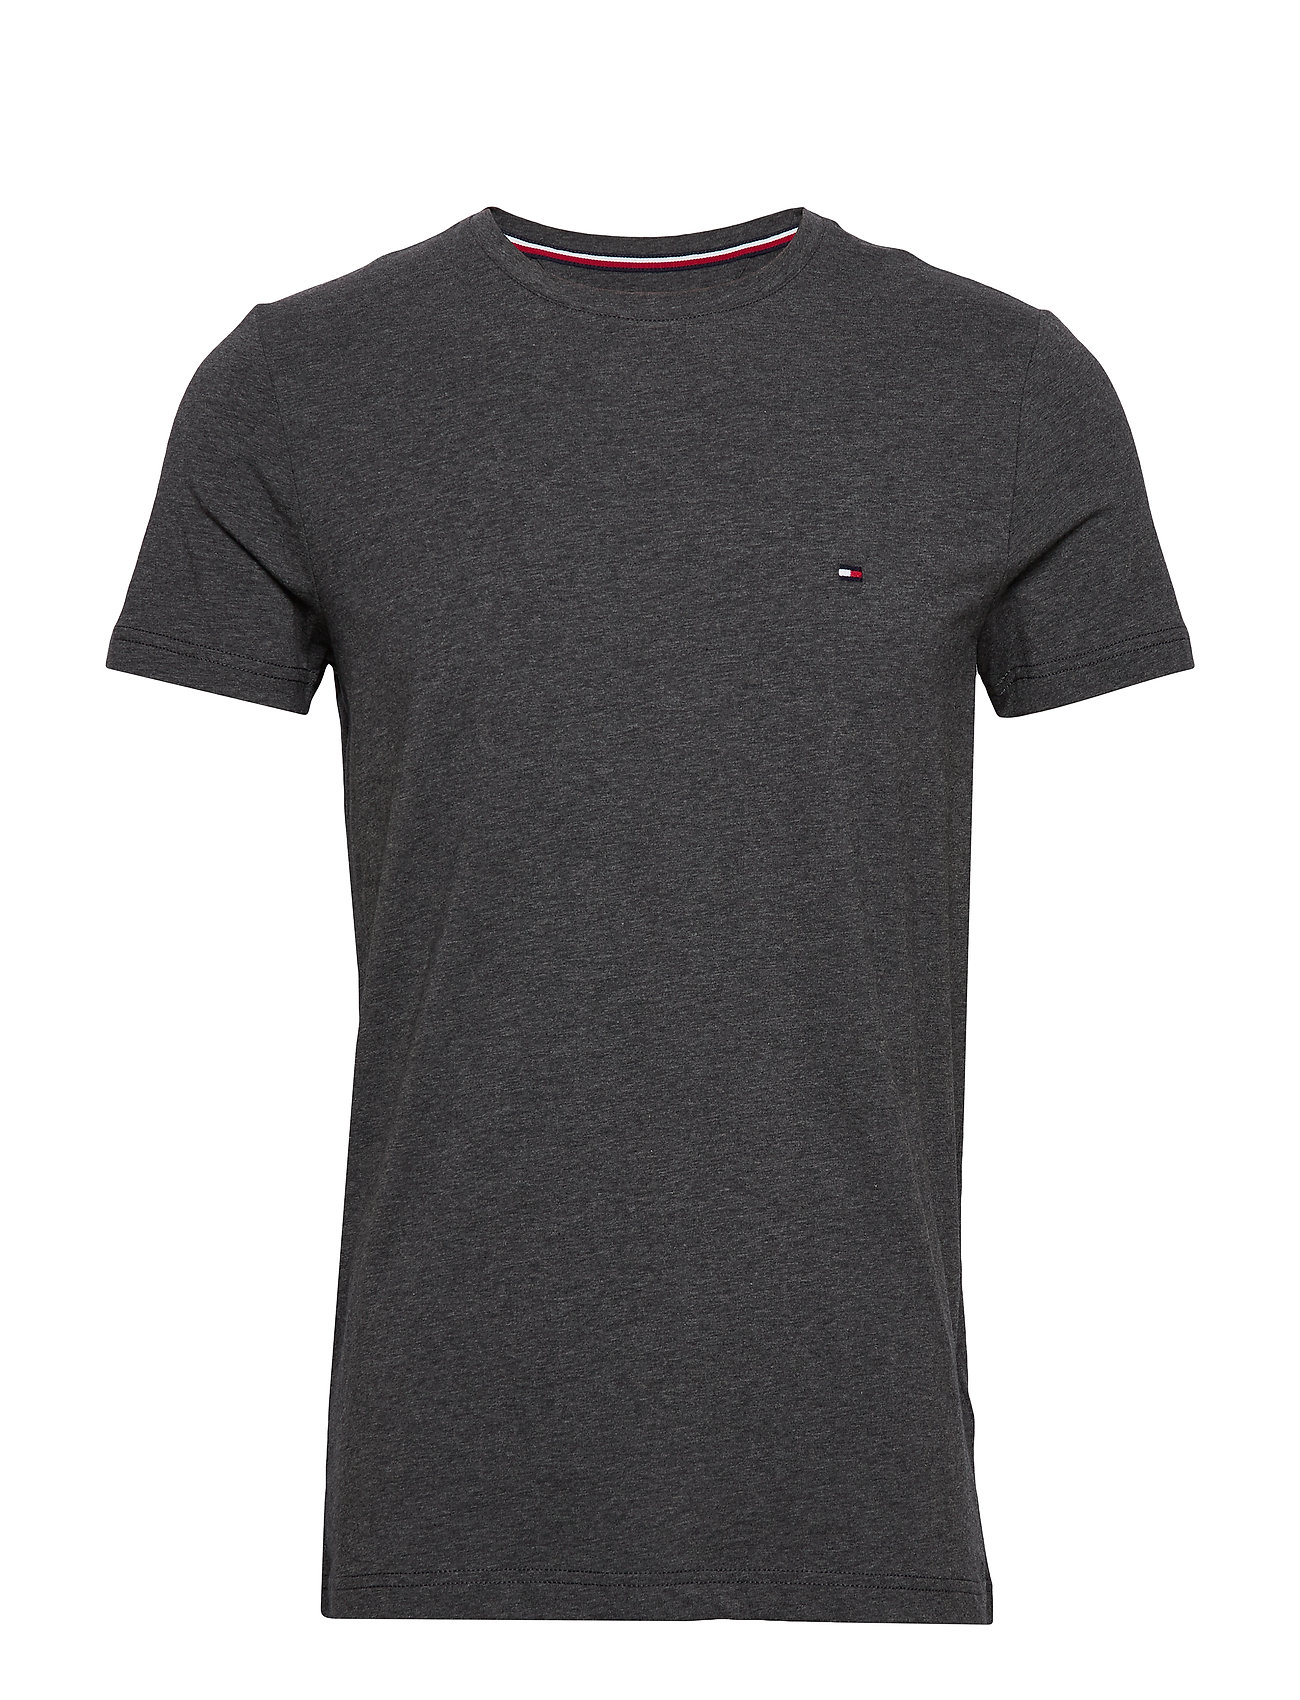 Tommy Hilfiger STRETCH SLIM FIT TEE - CHARCOAL HEATHER